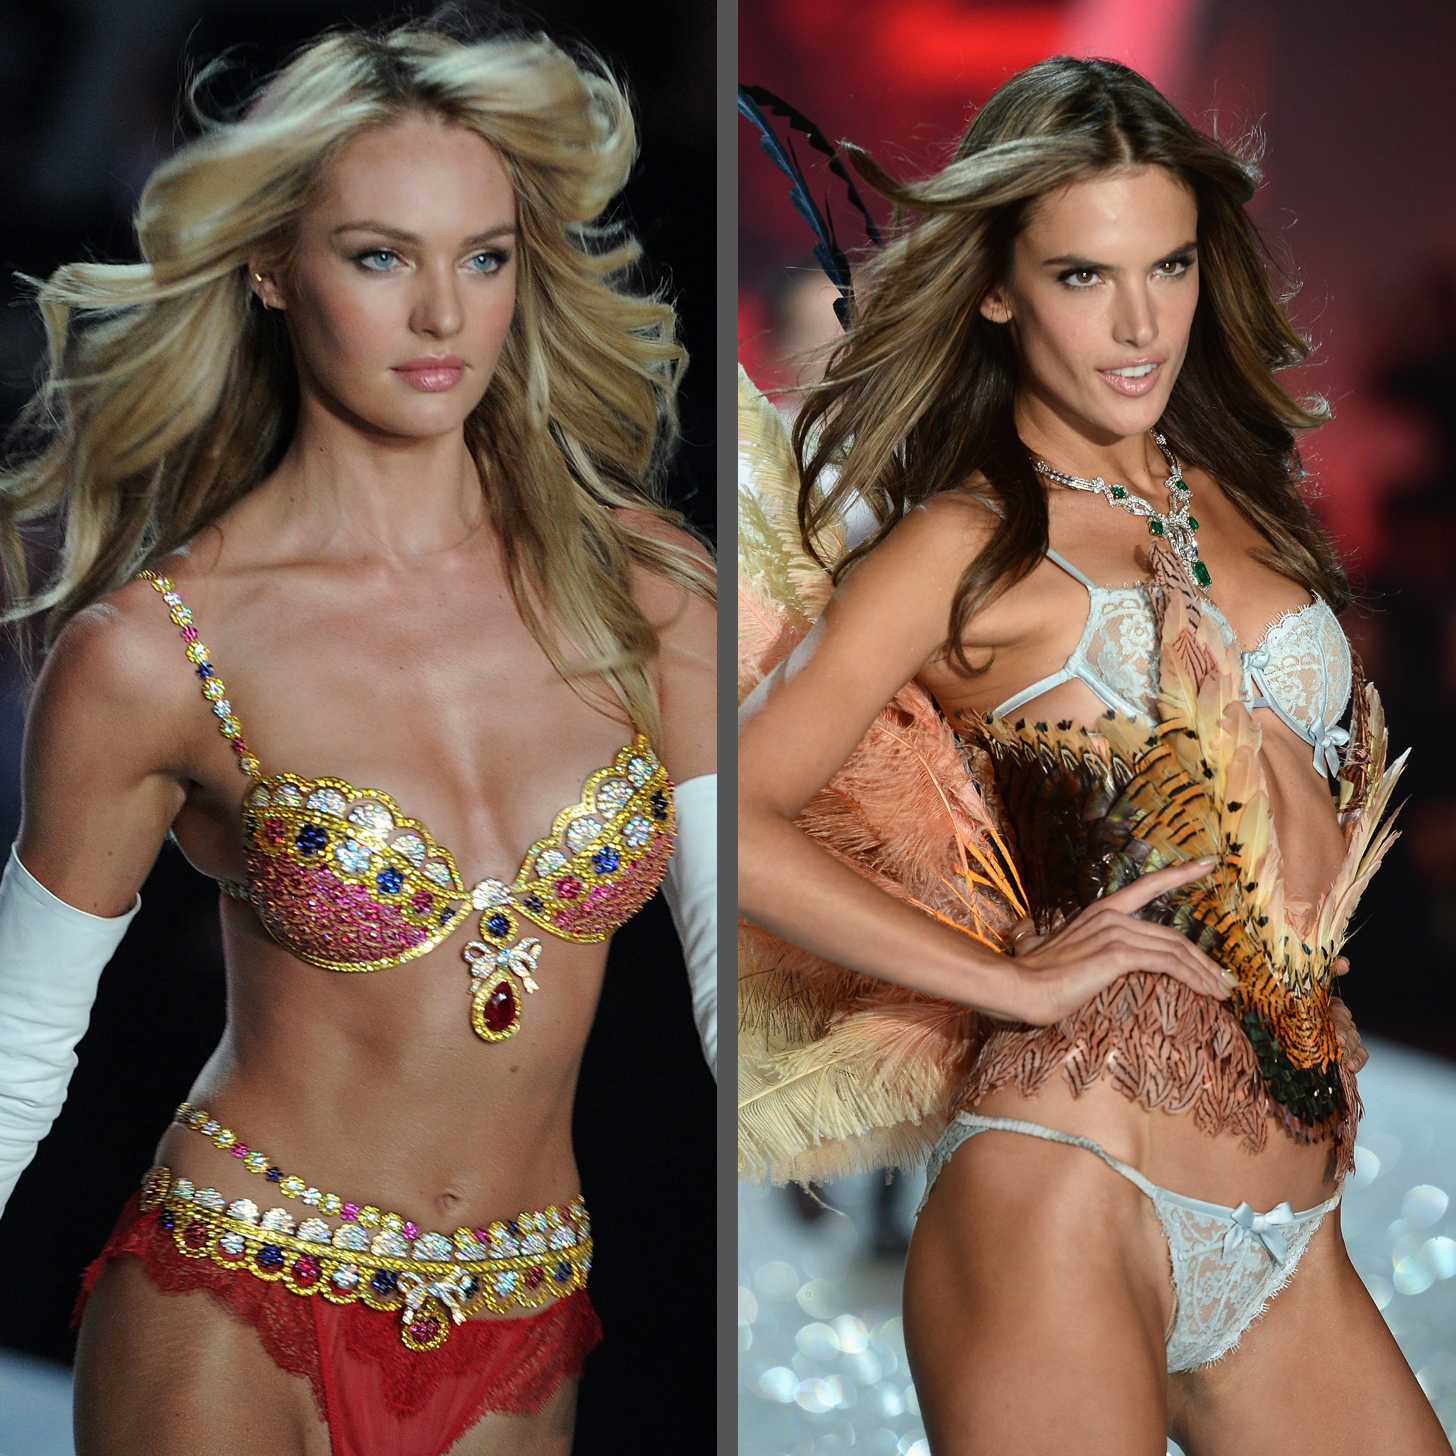 Victoria's Secret Fashion Show 2015 Full Share This Link